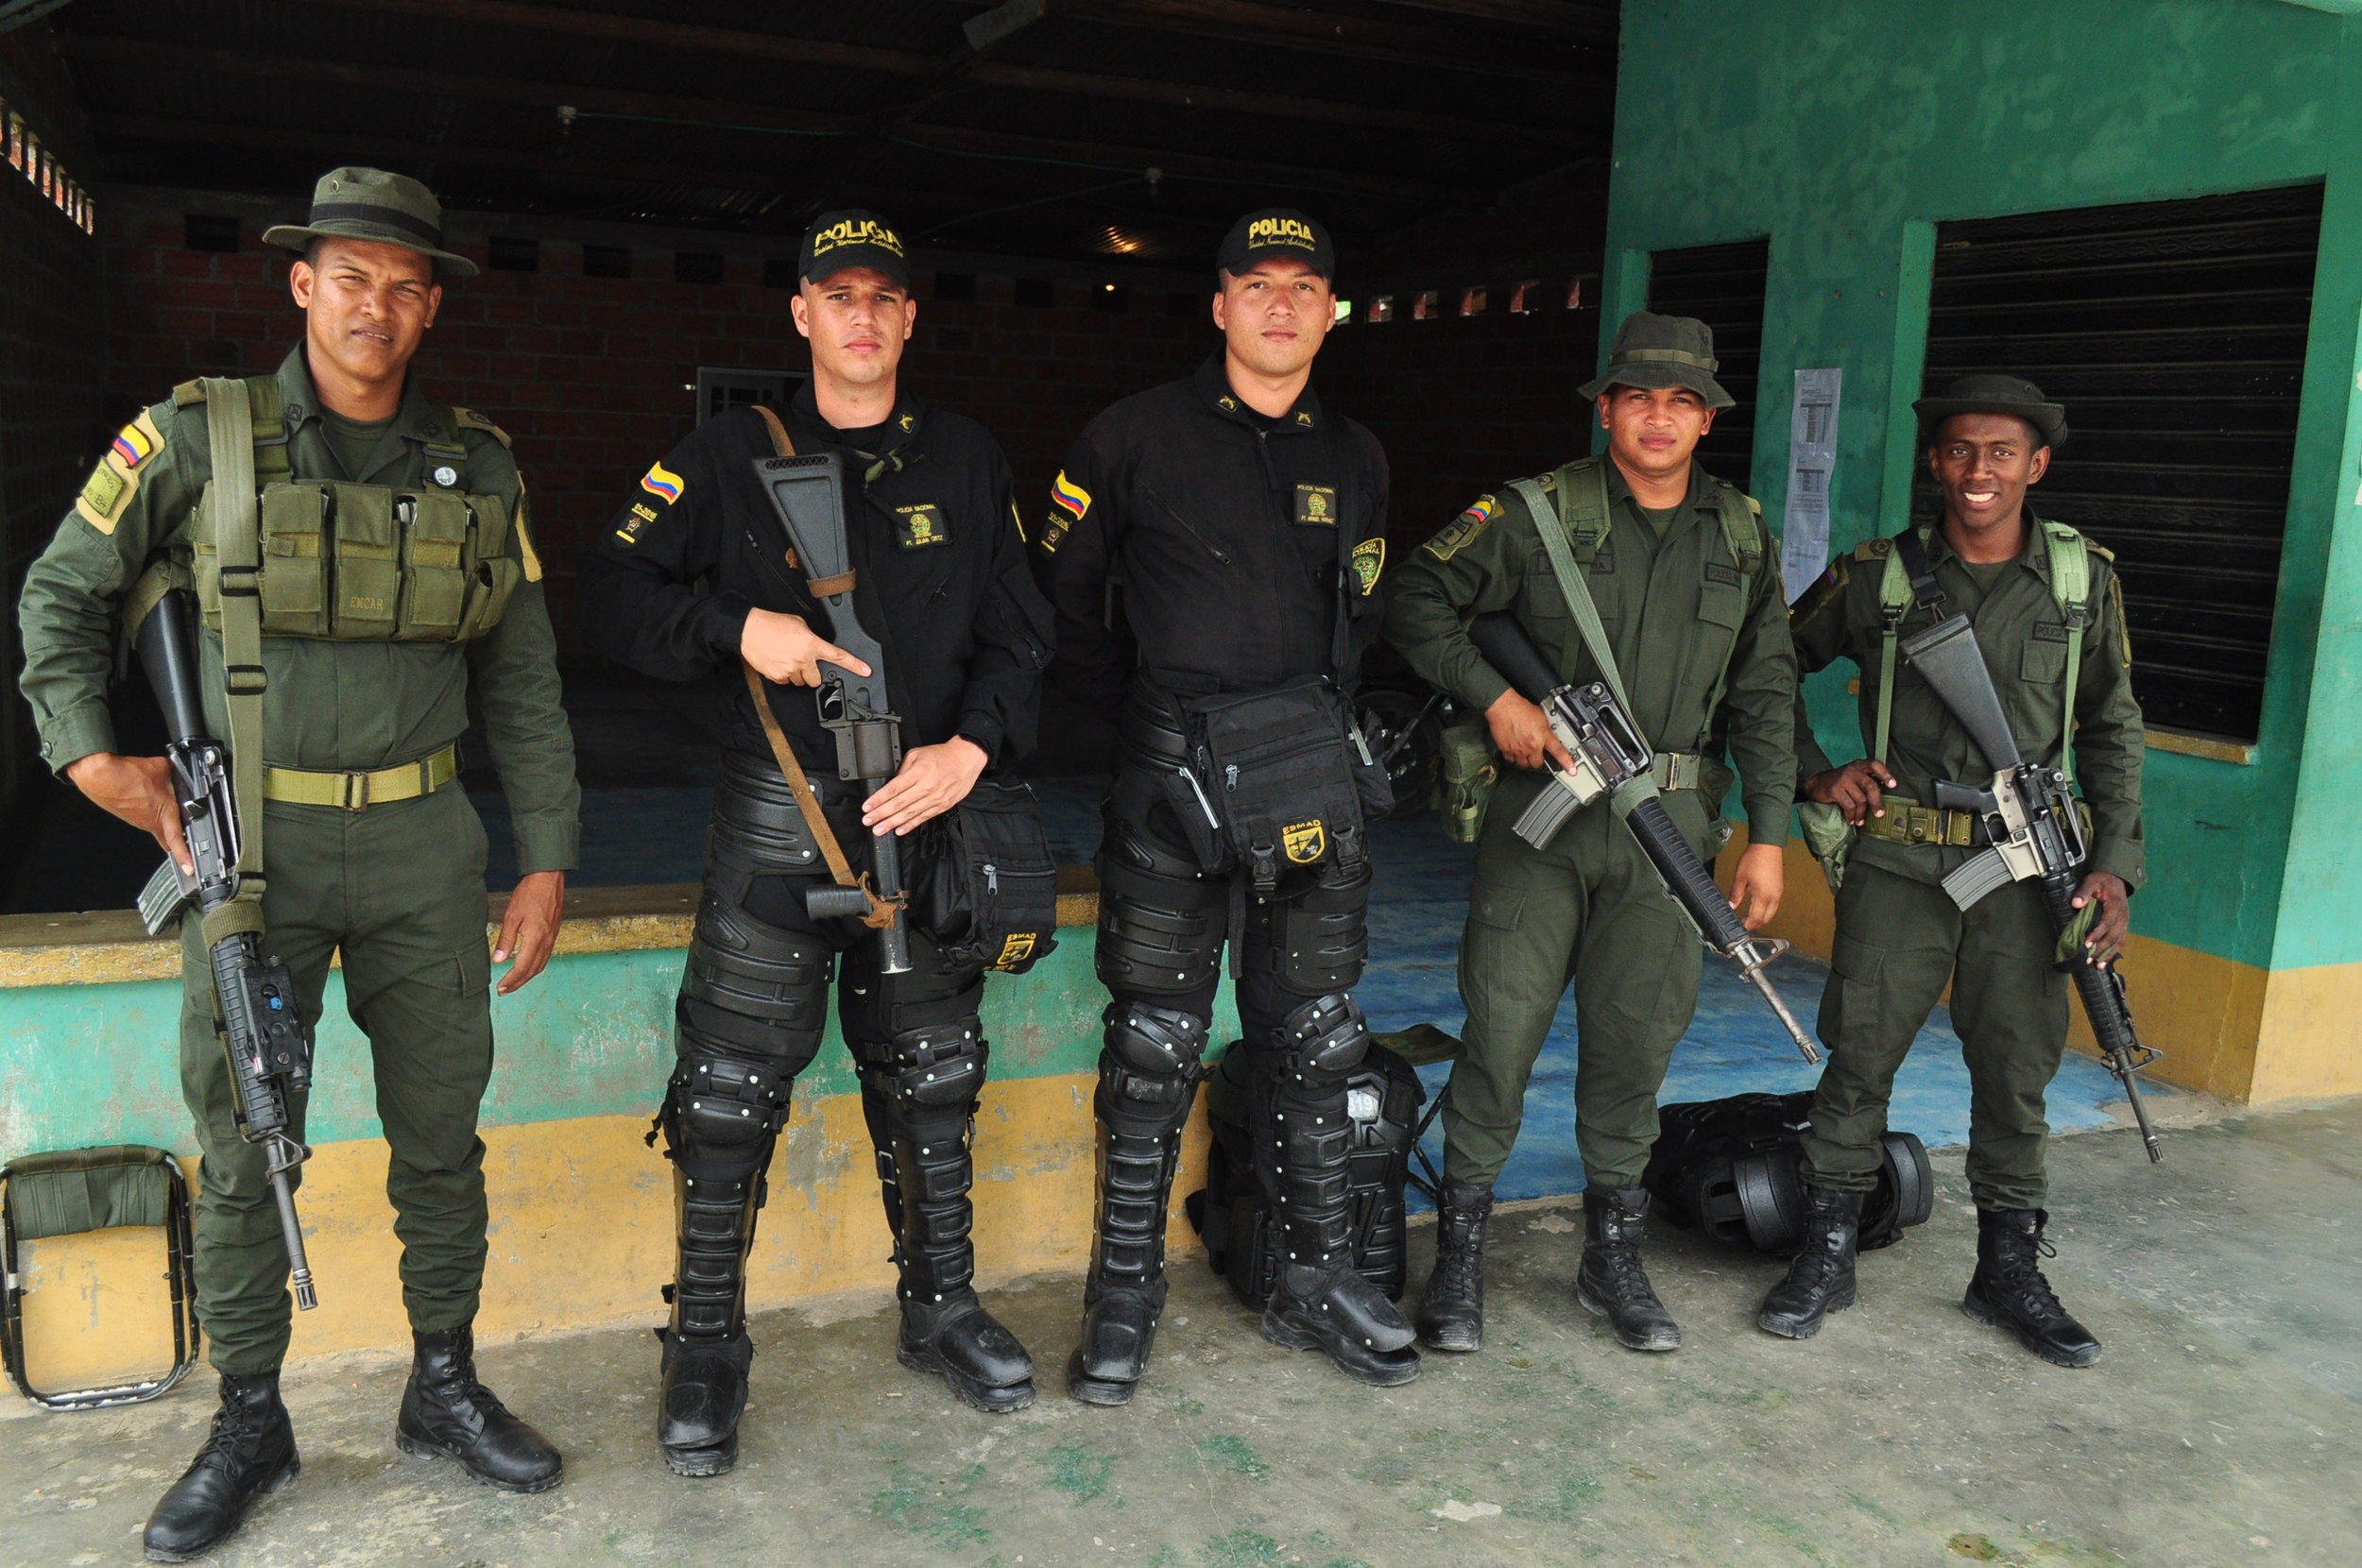 Colombian police and army deploy to areas of the country where communities carry out strikes over the lack of government services or discontent with international extractive industries, such as this force in the department of Putumayo. However, few communities living in confinement benefit from such robust protection, thereby paving the way for armed groups to fill power vacuums.